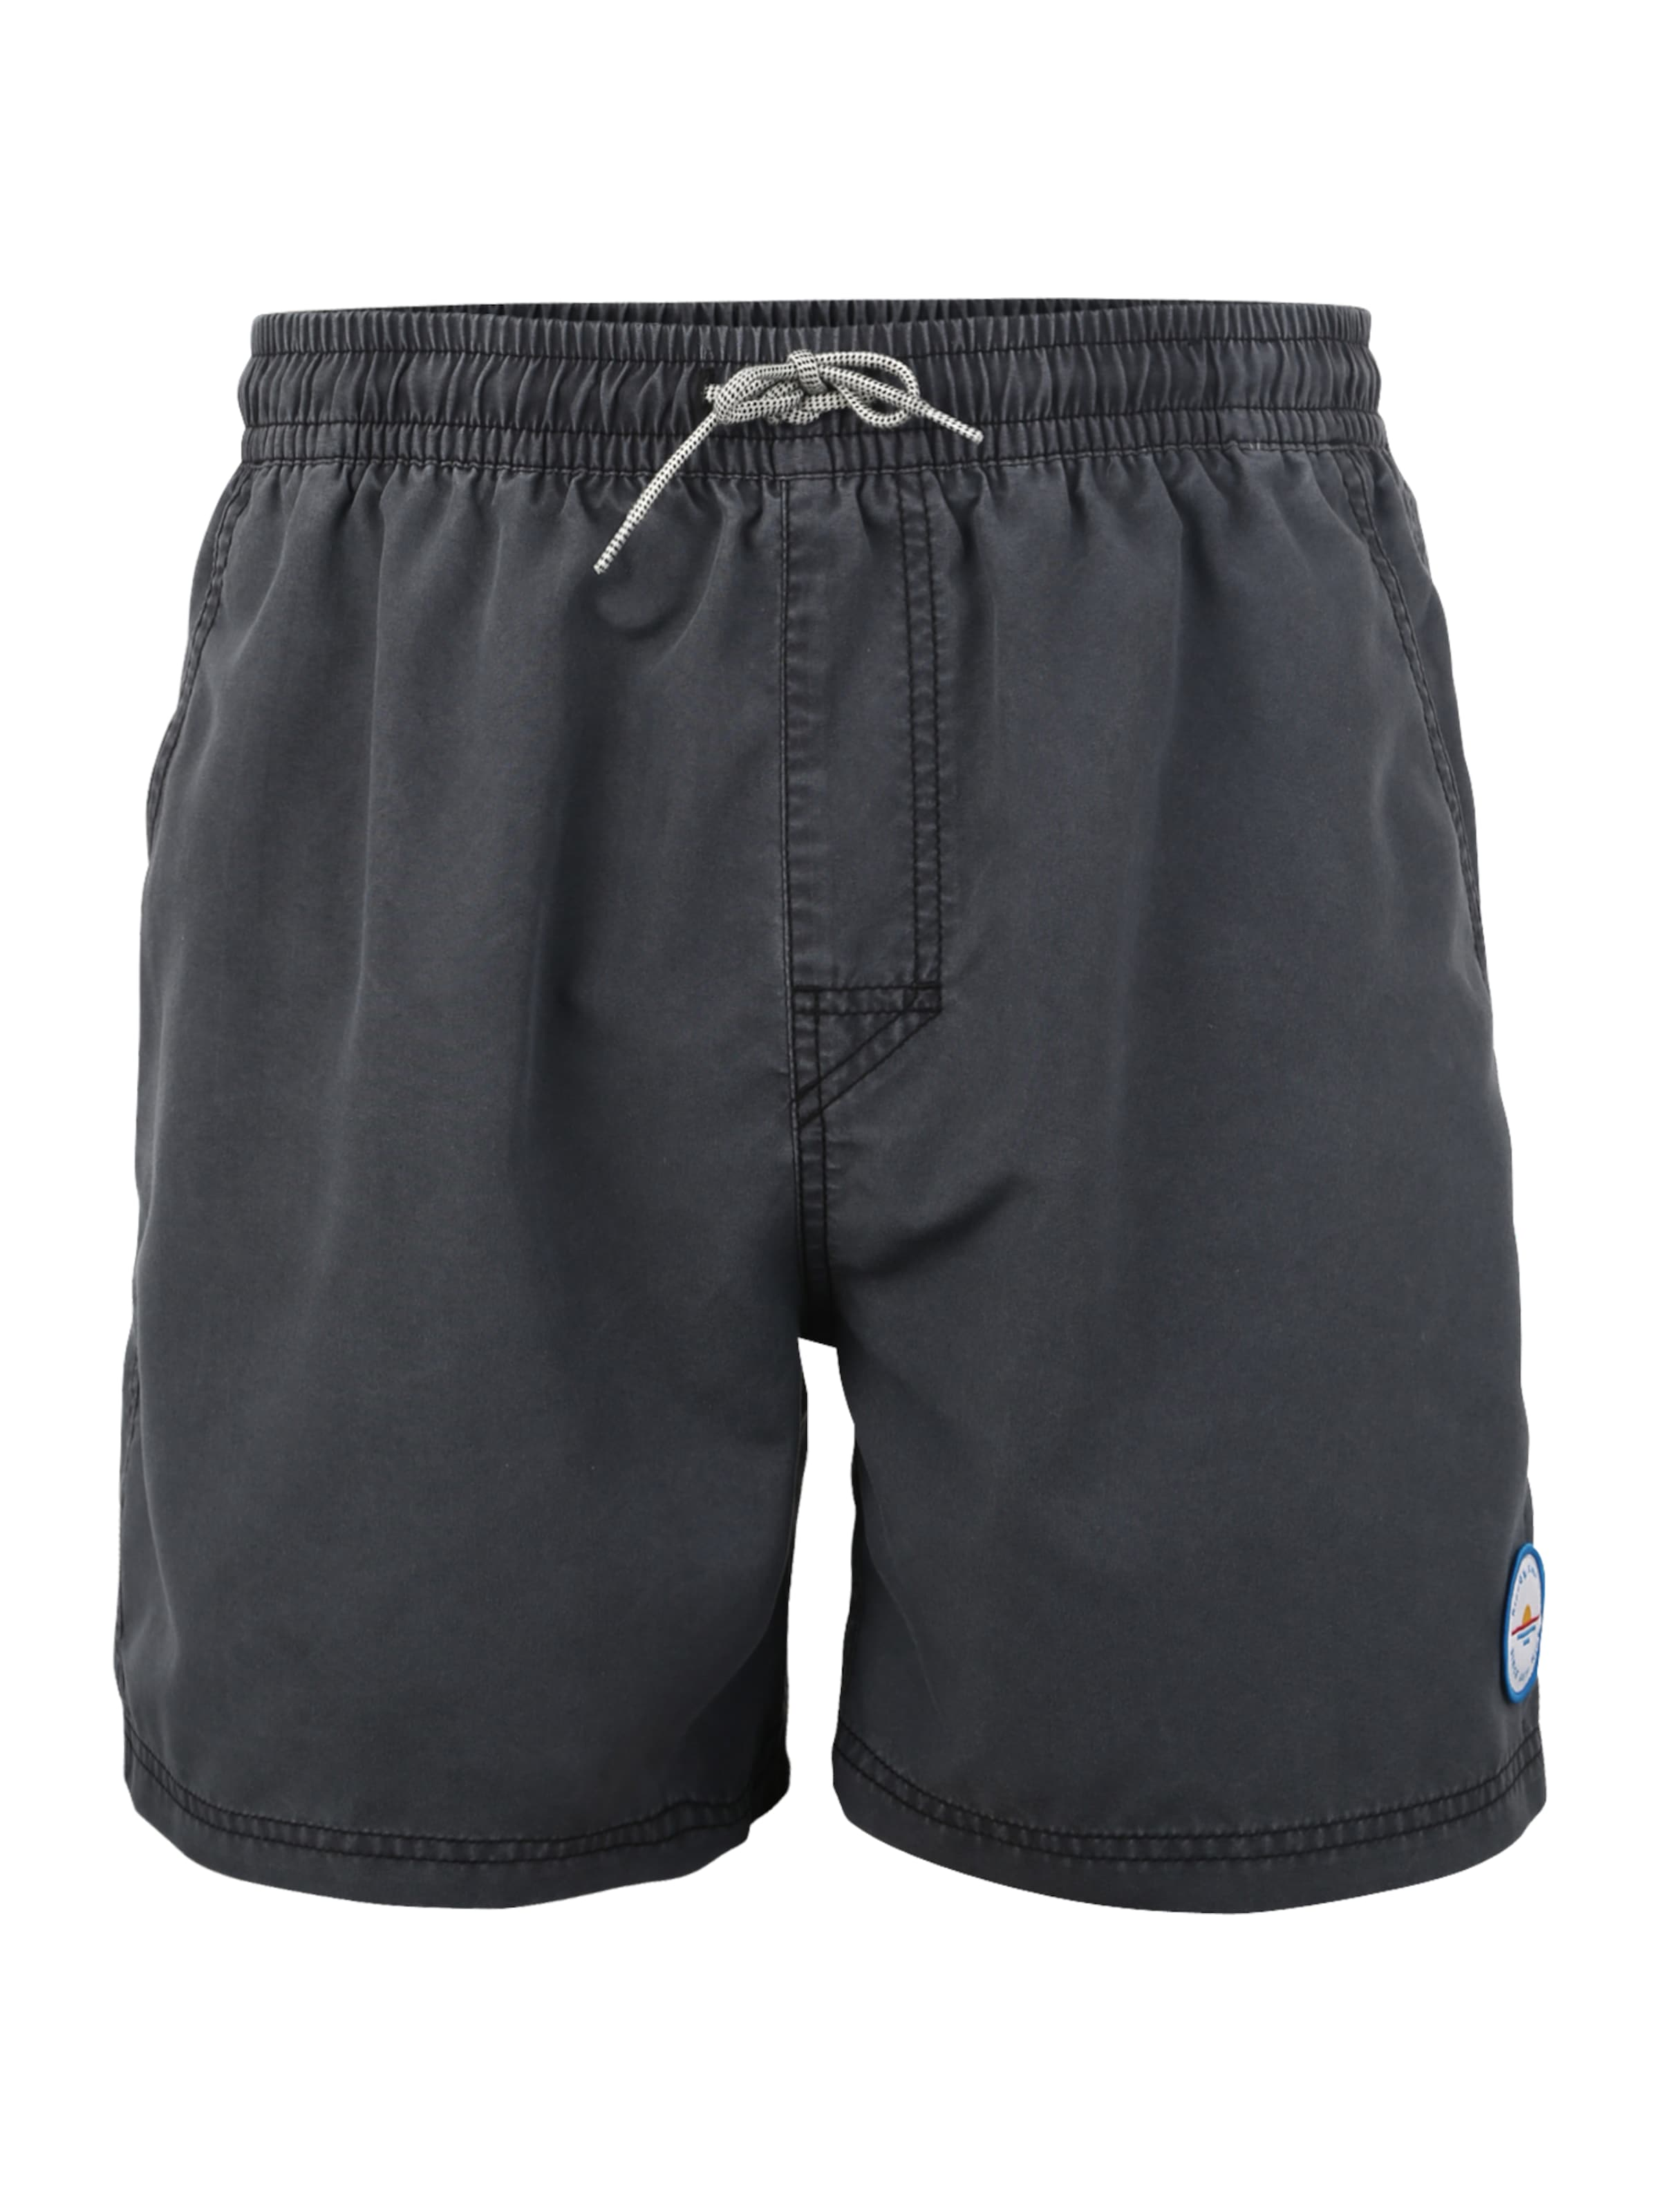 In Rip 'volley Sunset Curl Shades 16' Badeshorts Schwarz 8OP0Xnkw